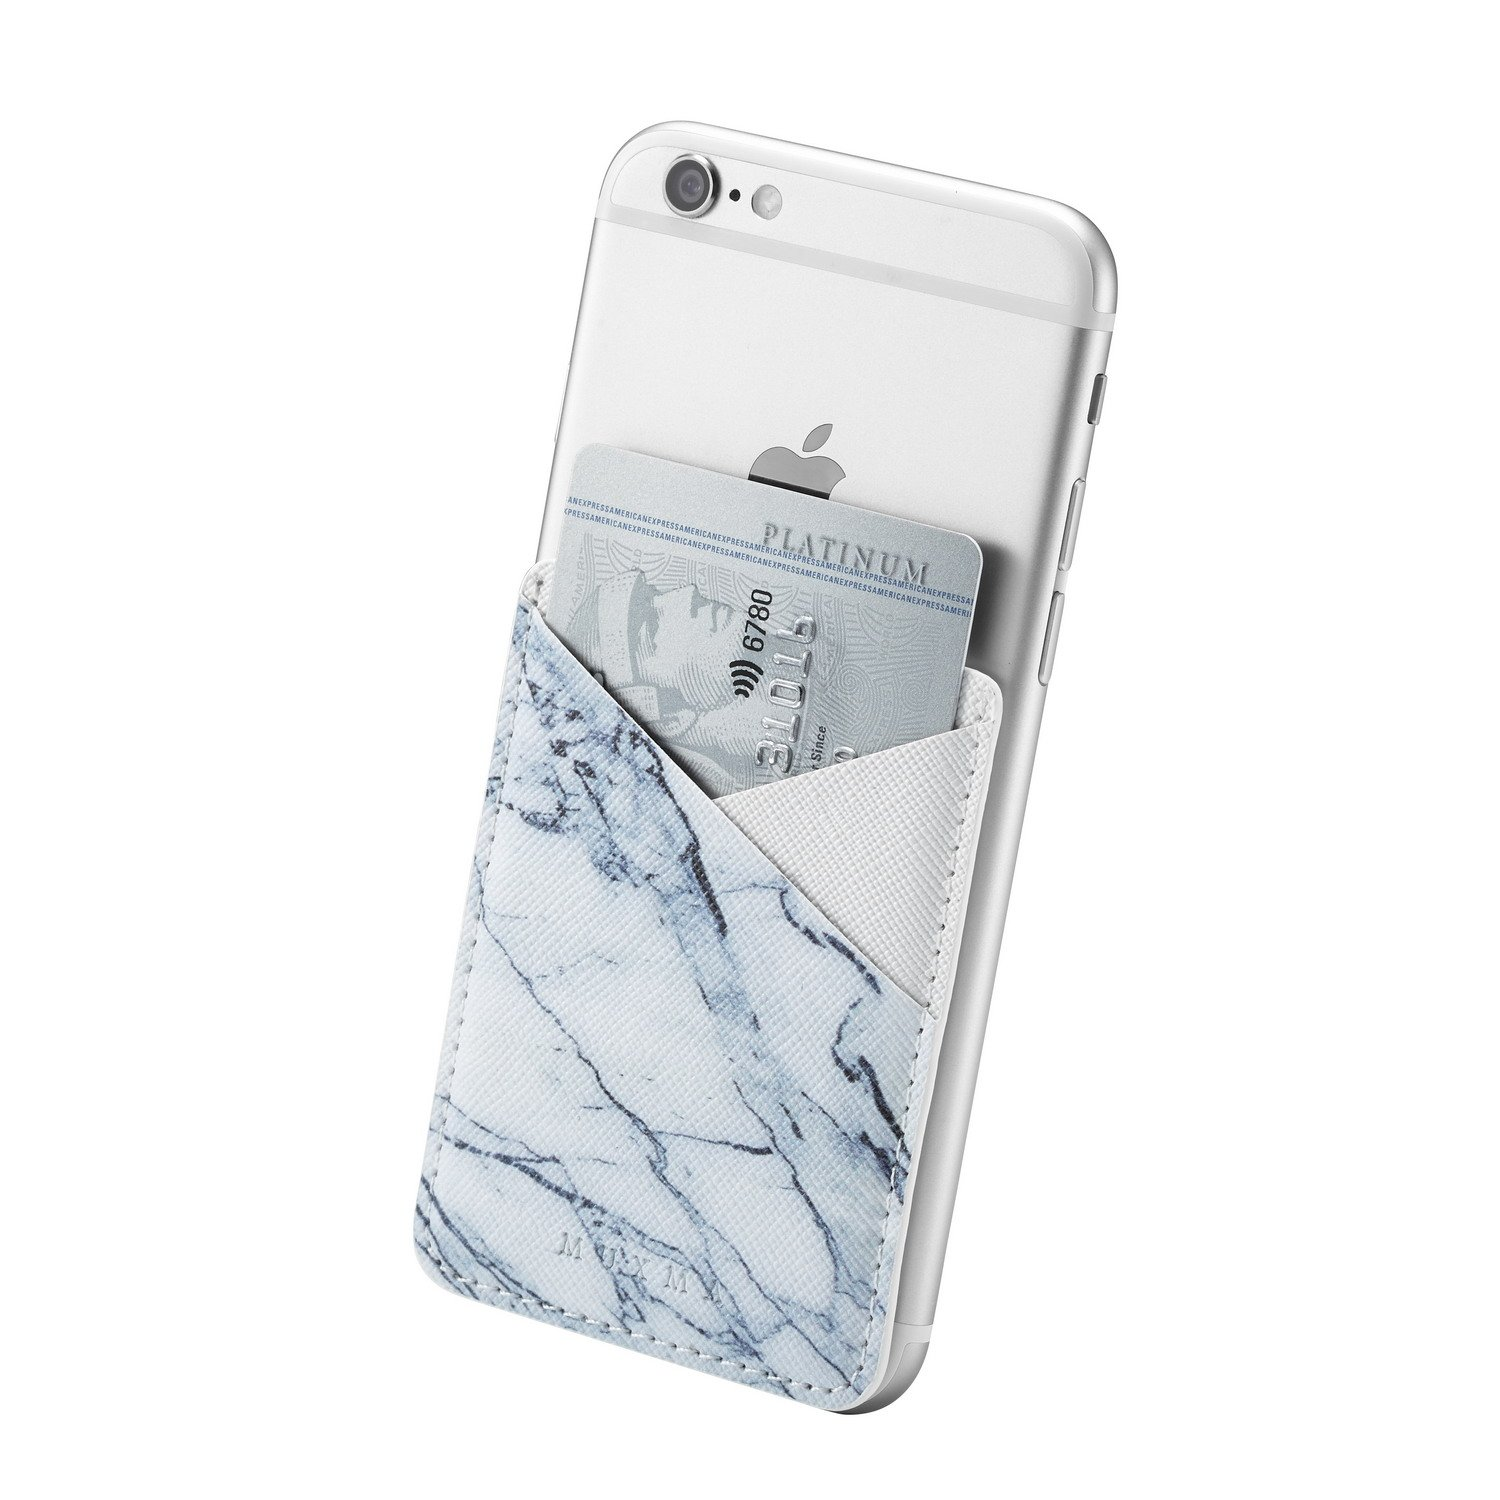 (Three) Stretchy Marble Cell Phone Stick On Wallet Card Holder Phone Pocket iPhone, Android All Smartphones (Marble Pattern) by Heast (Image #7)